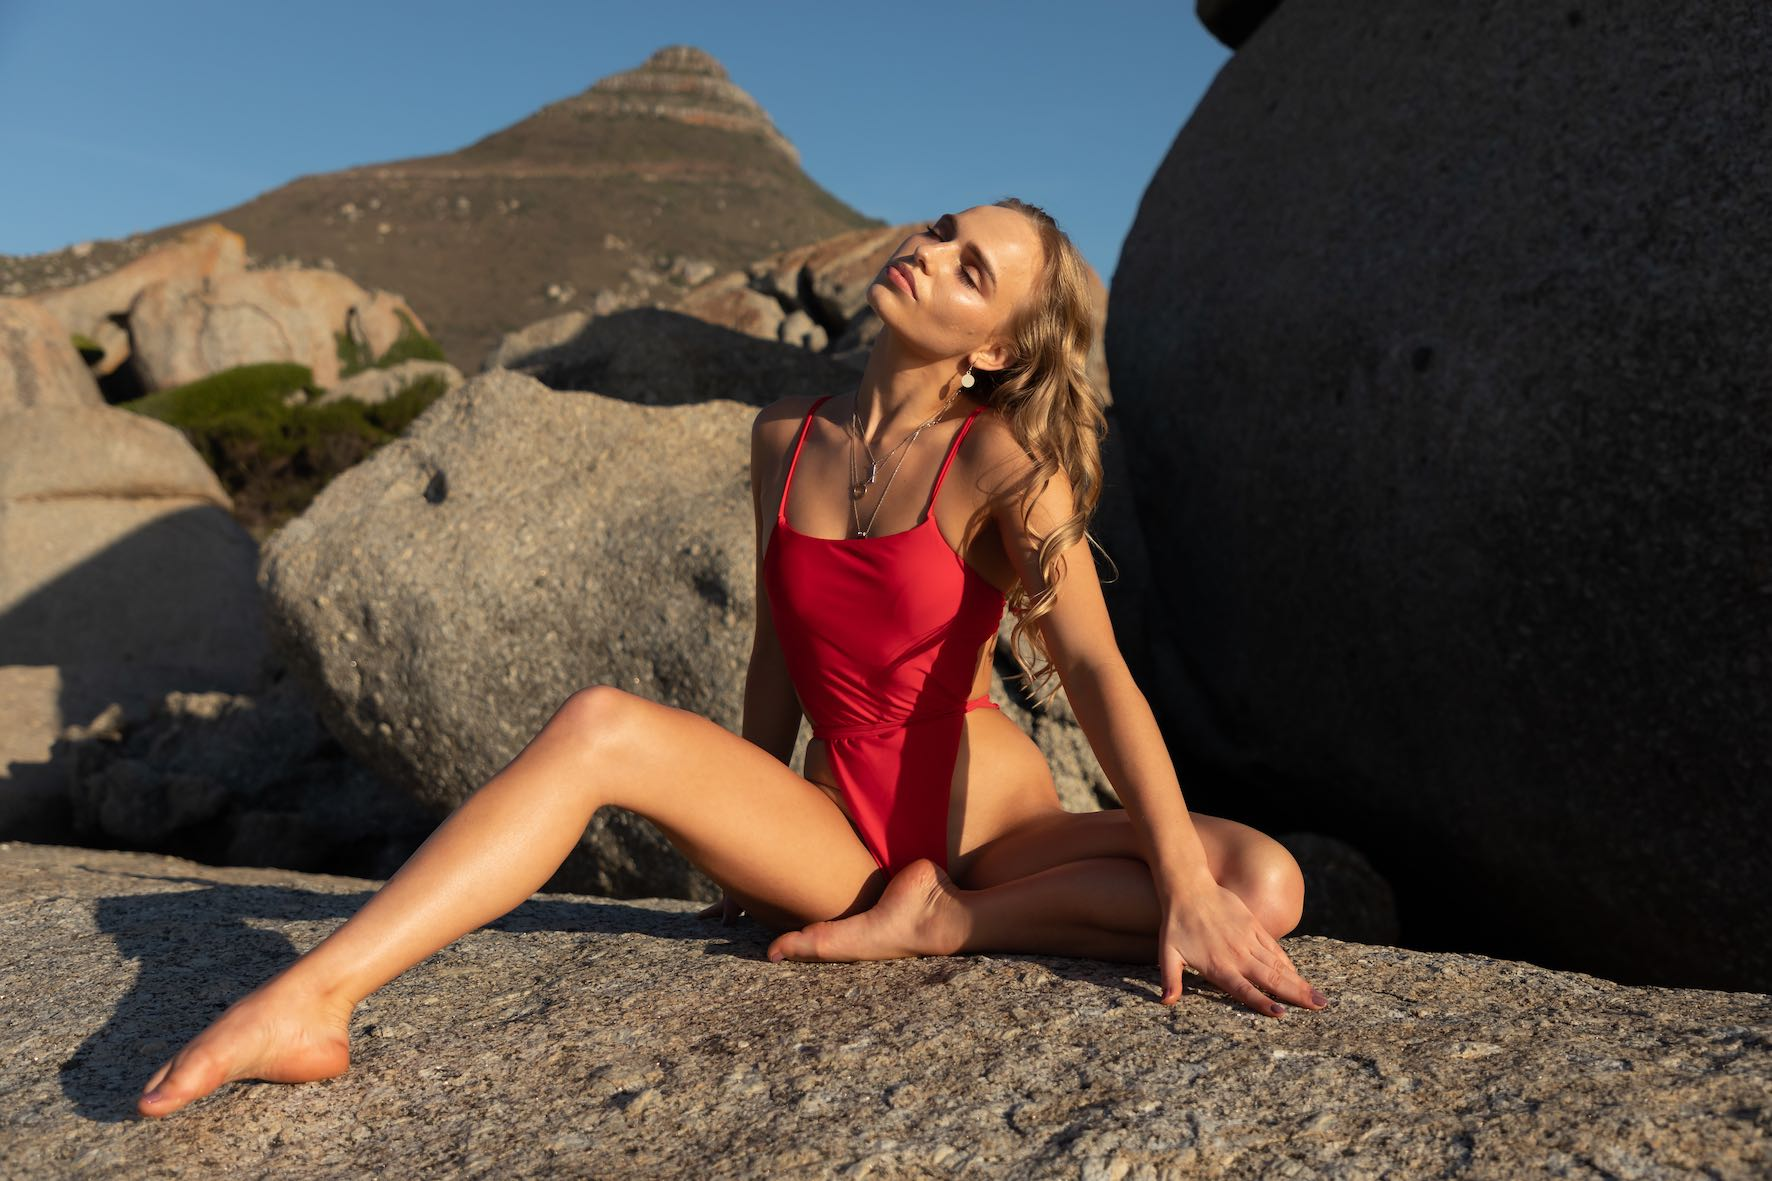 Bianca Ludik features as our LW Babe of the Week